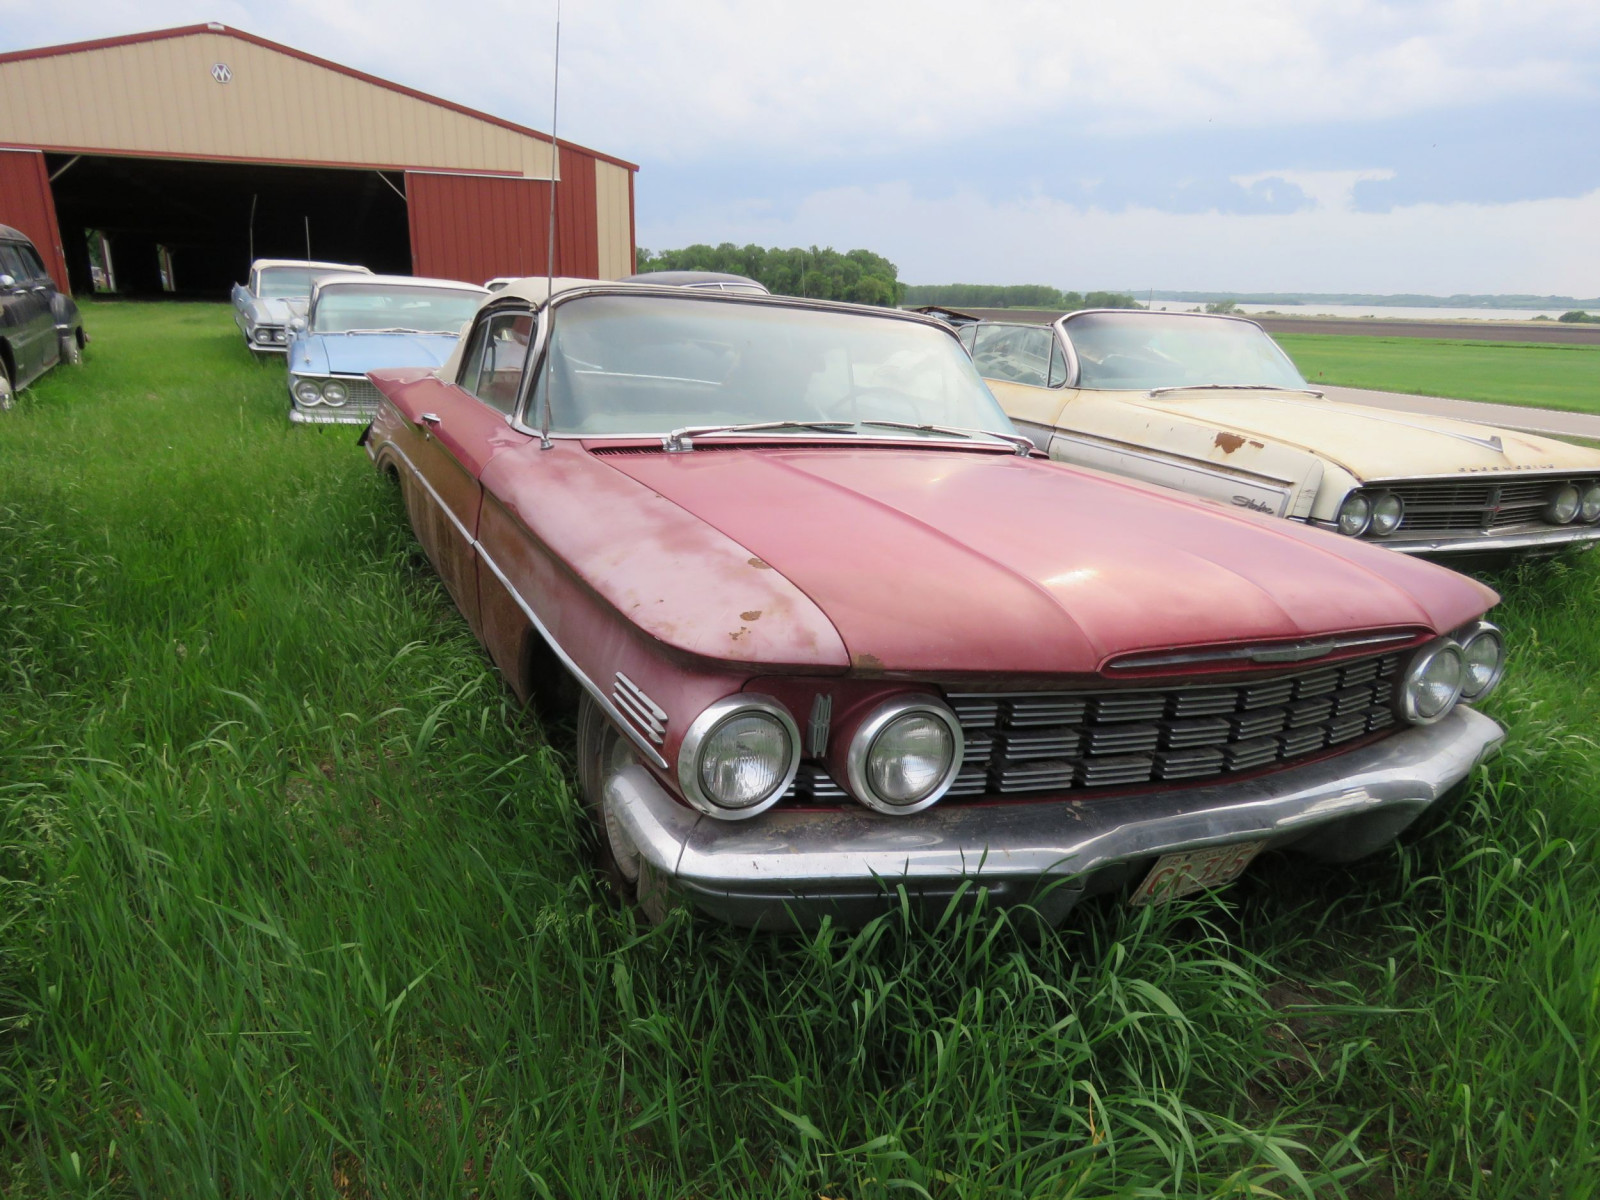 1960 Oldsmobile Dynamic 88 Convertible 607M56199 - Image 3